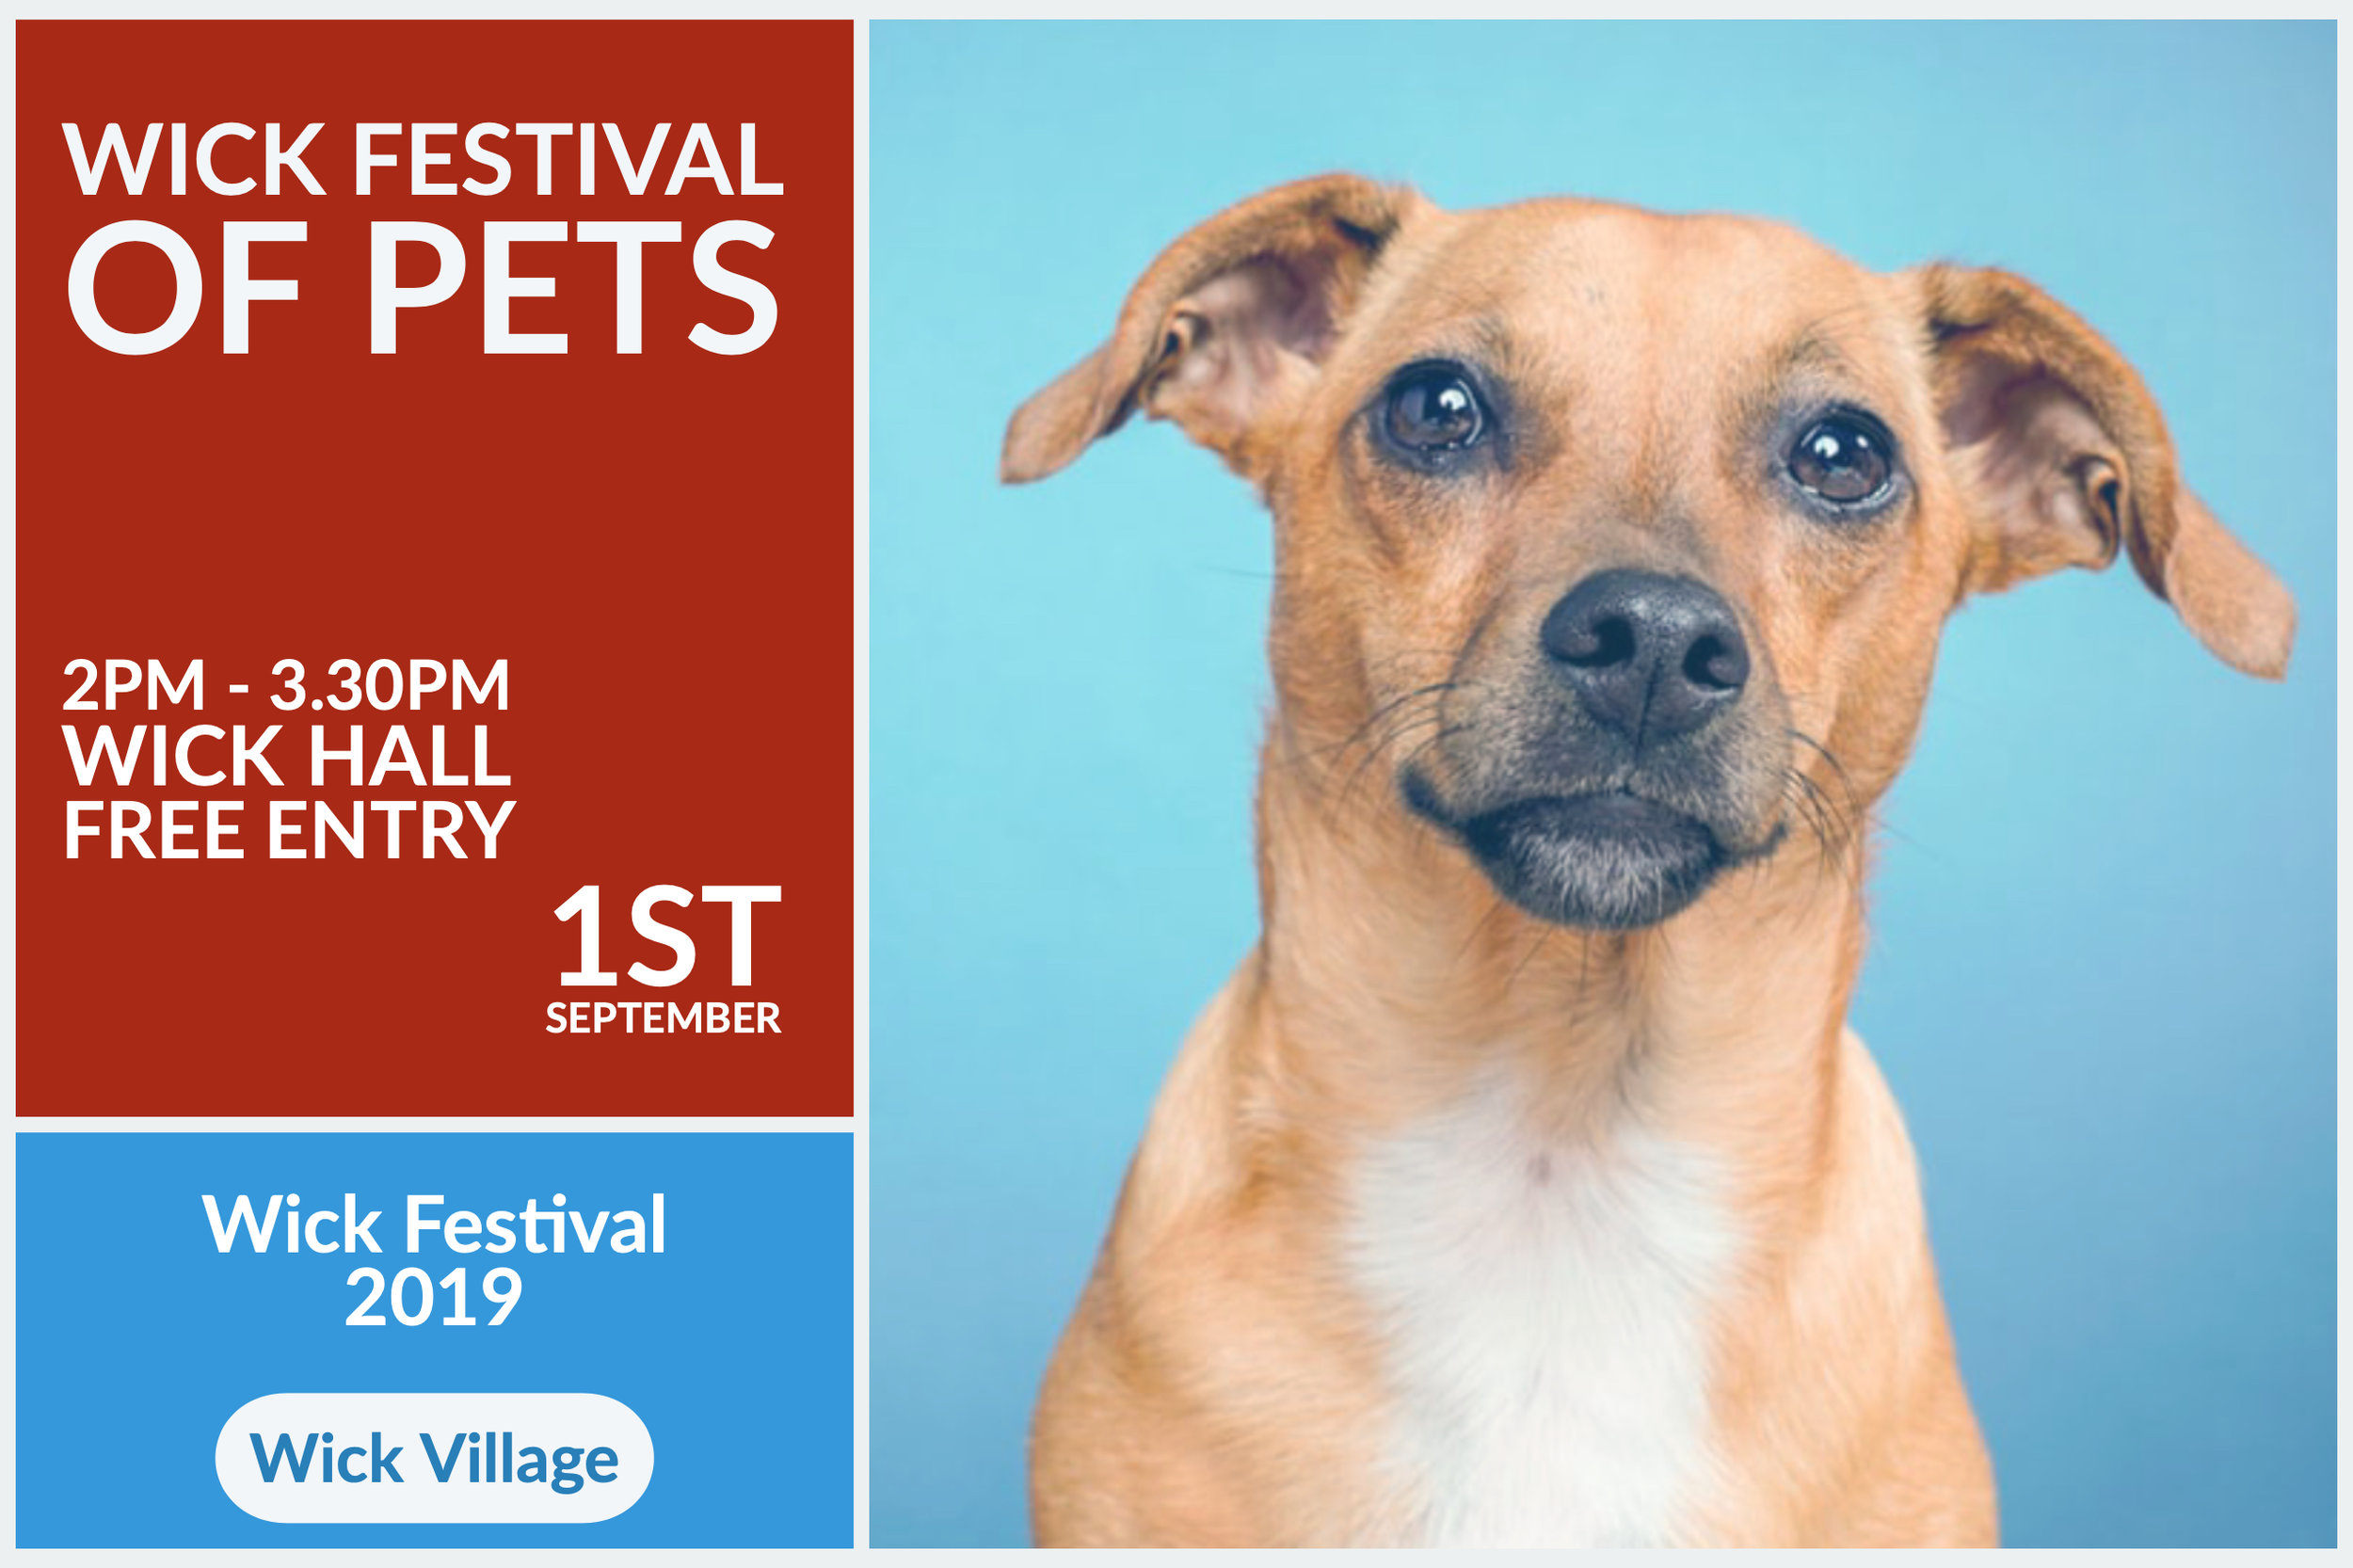 Wick Festival Of Pets - Hosted by Arun Dog Training